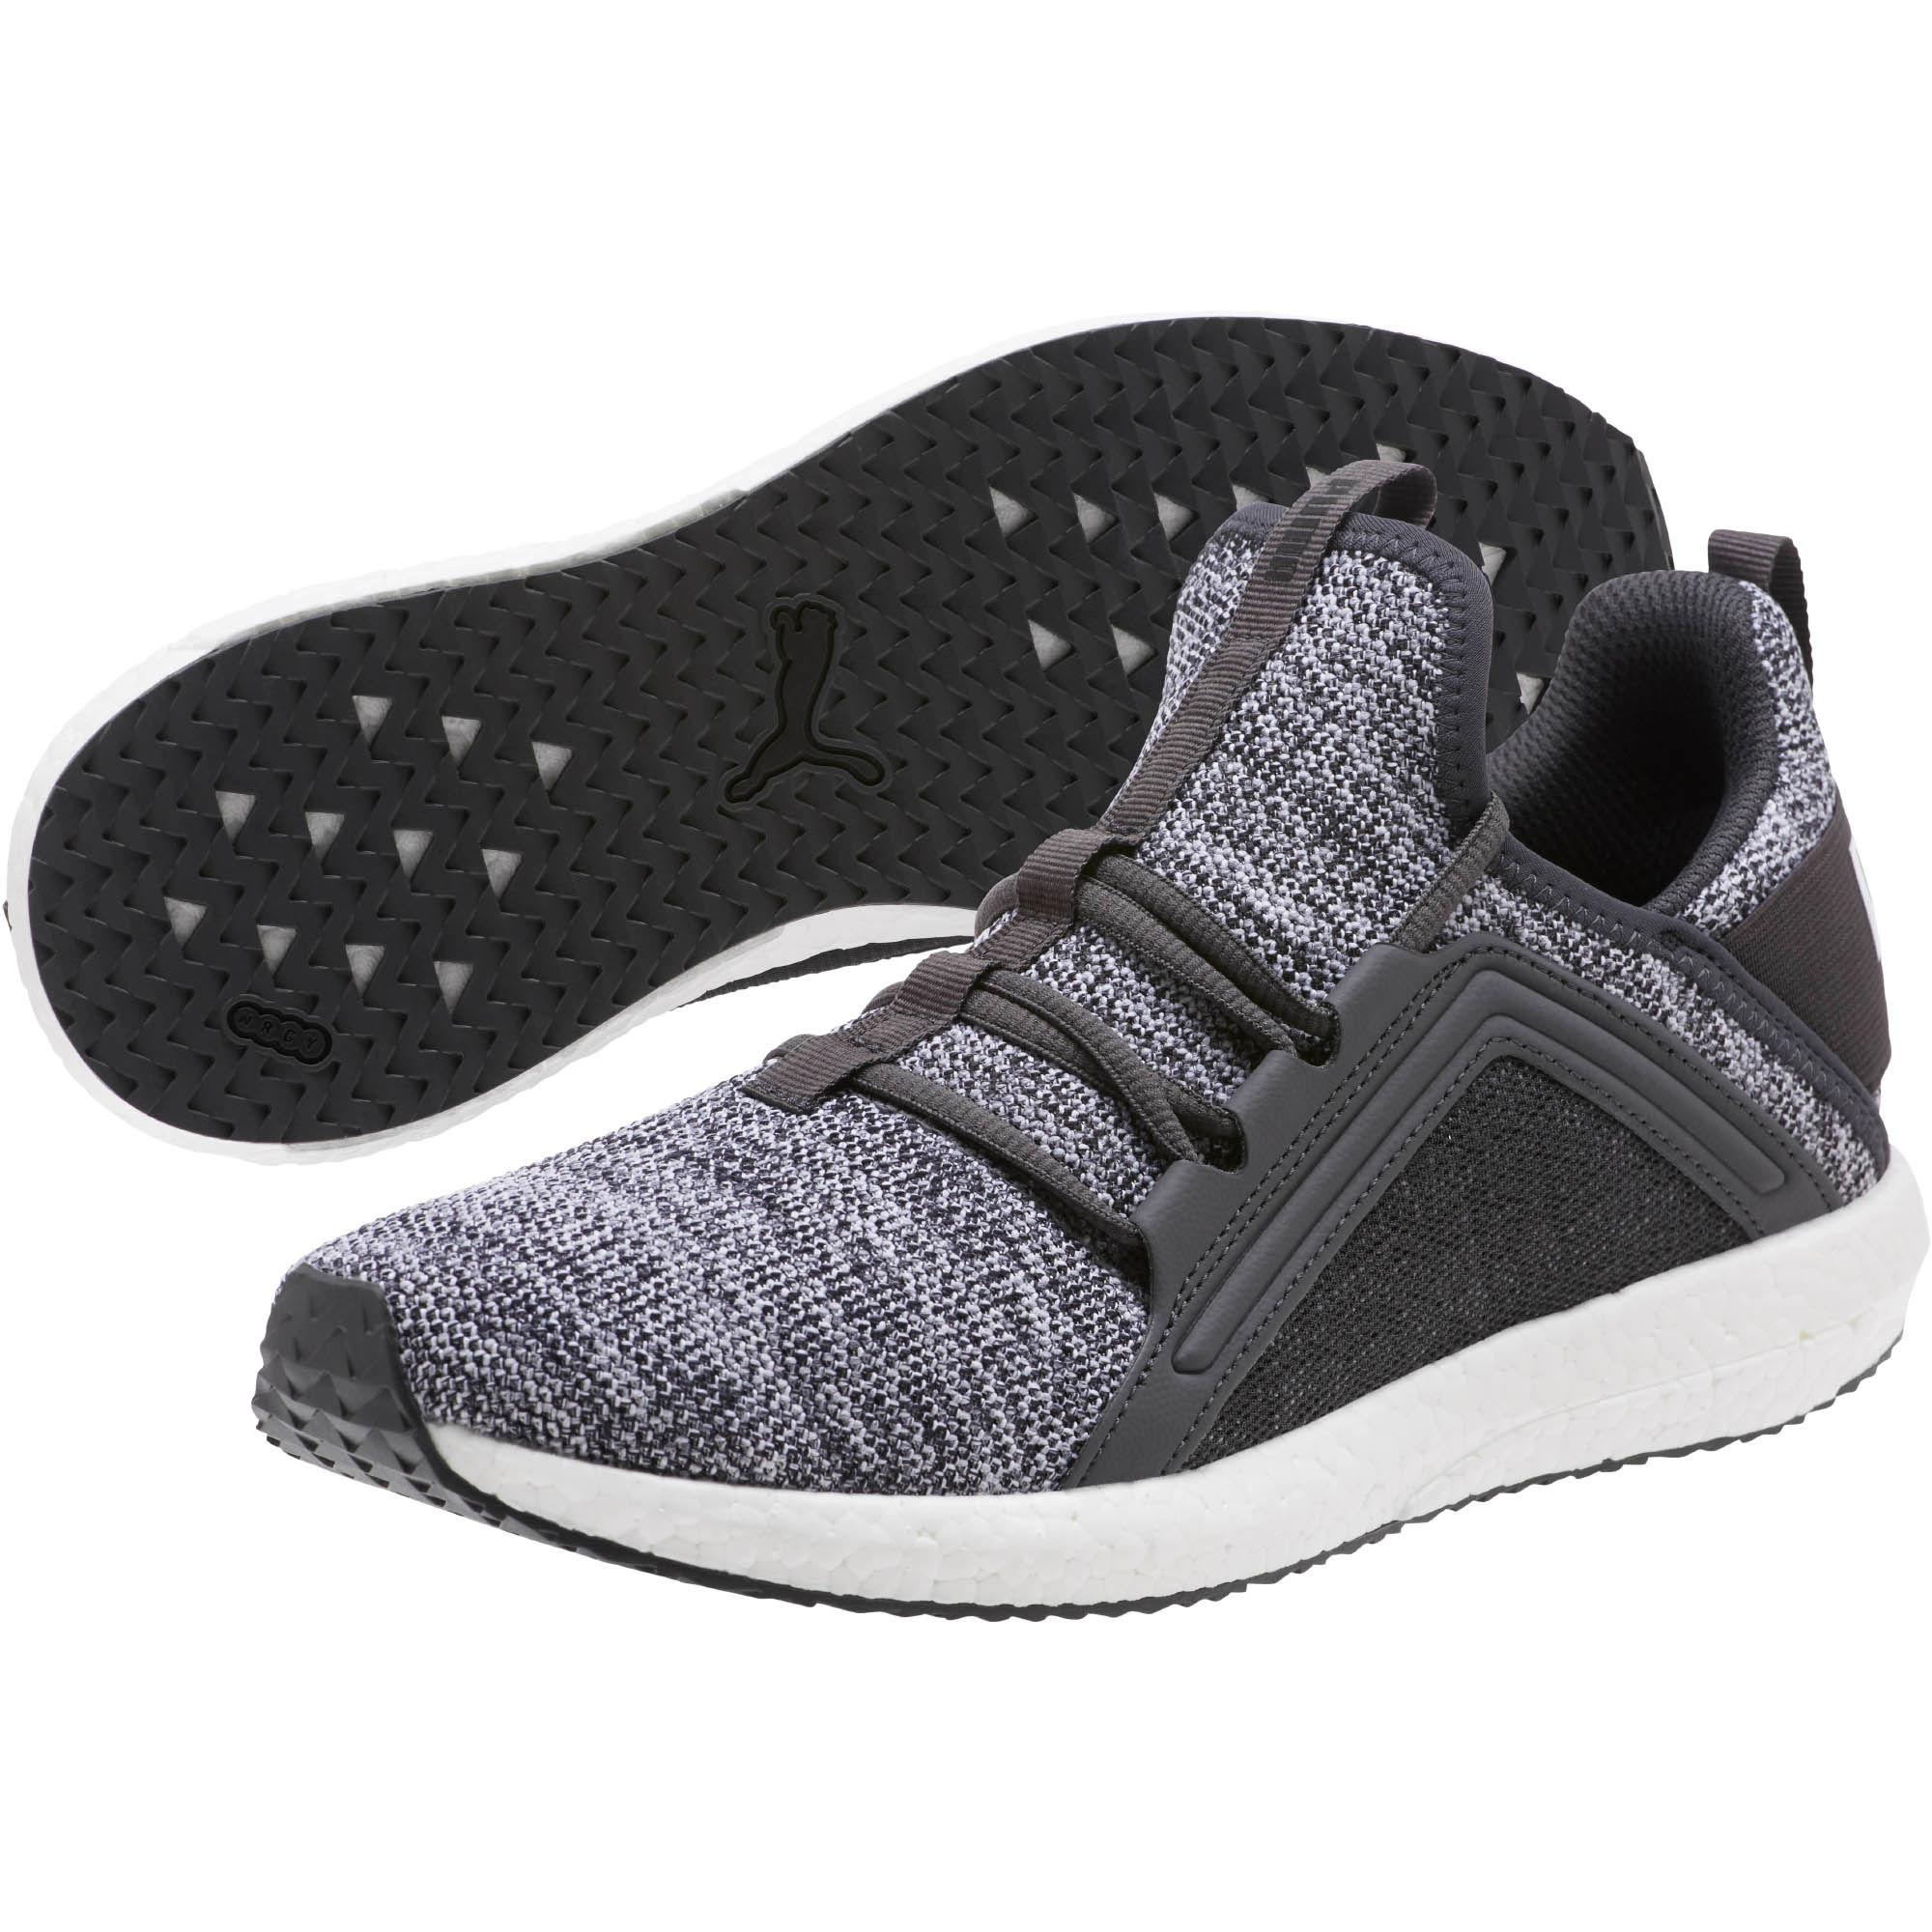 42cf62d1d1f5e9 Lyst - PUMA Mega Nrgy Knit Men s Trainers for Men - Save 21%